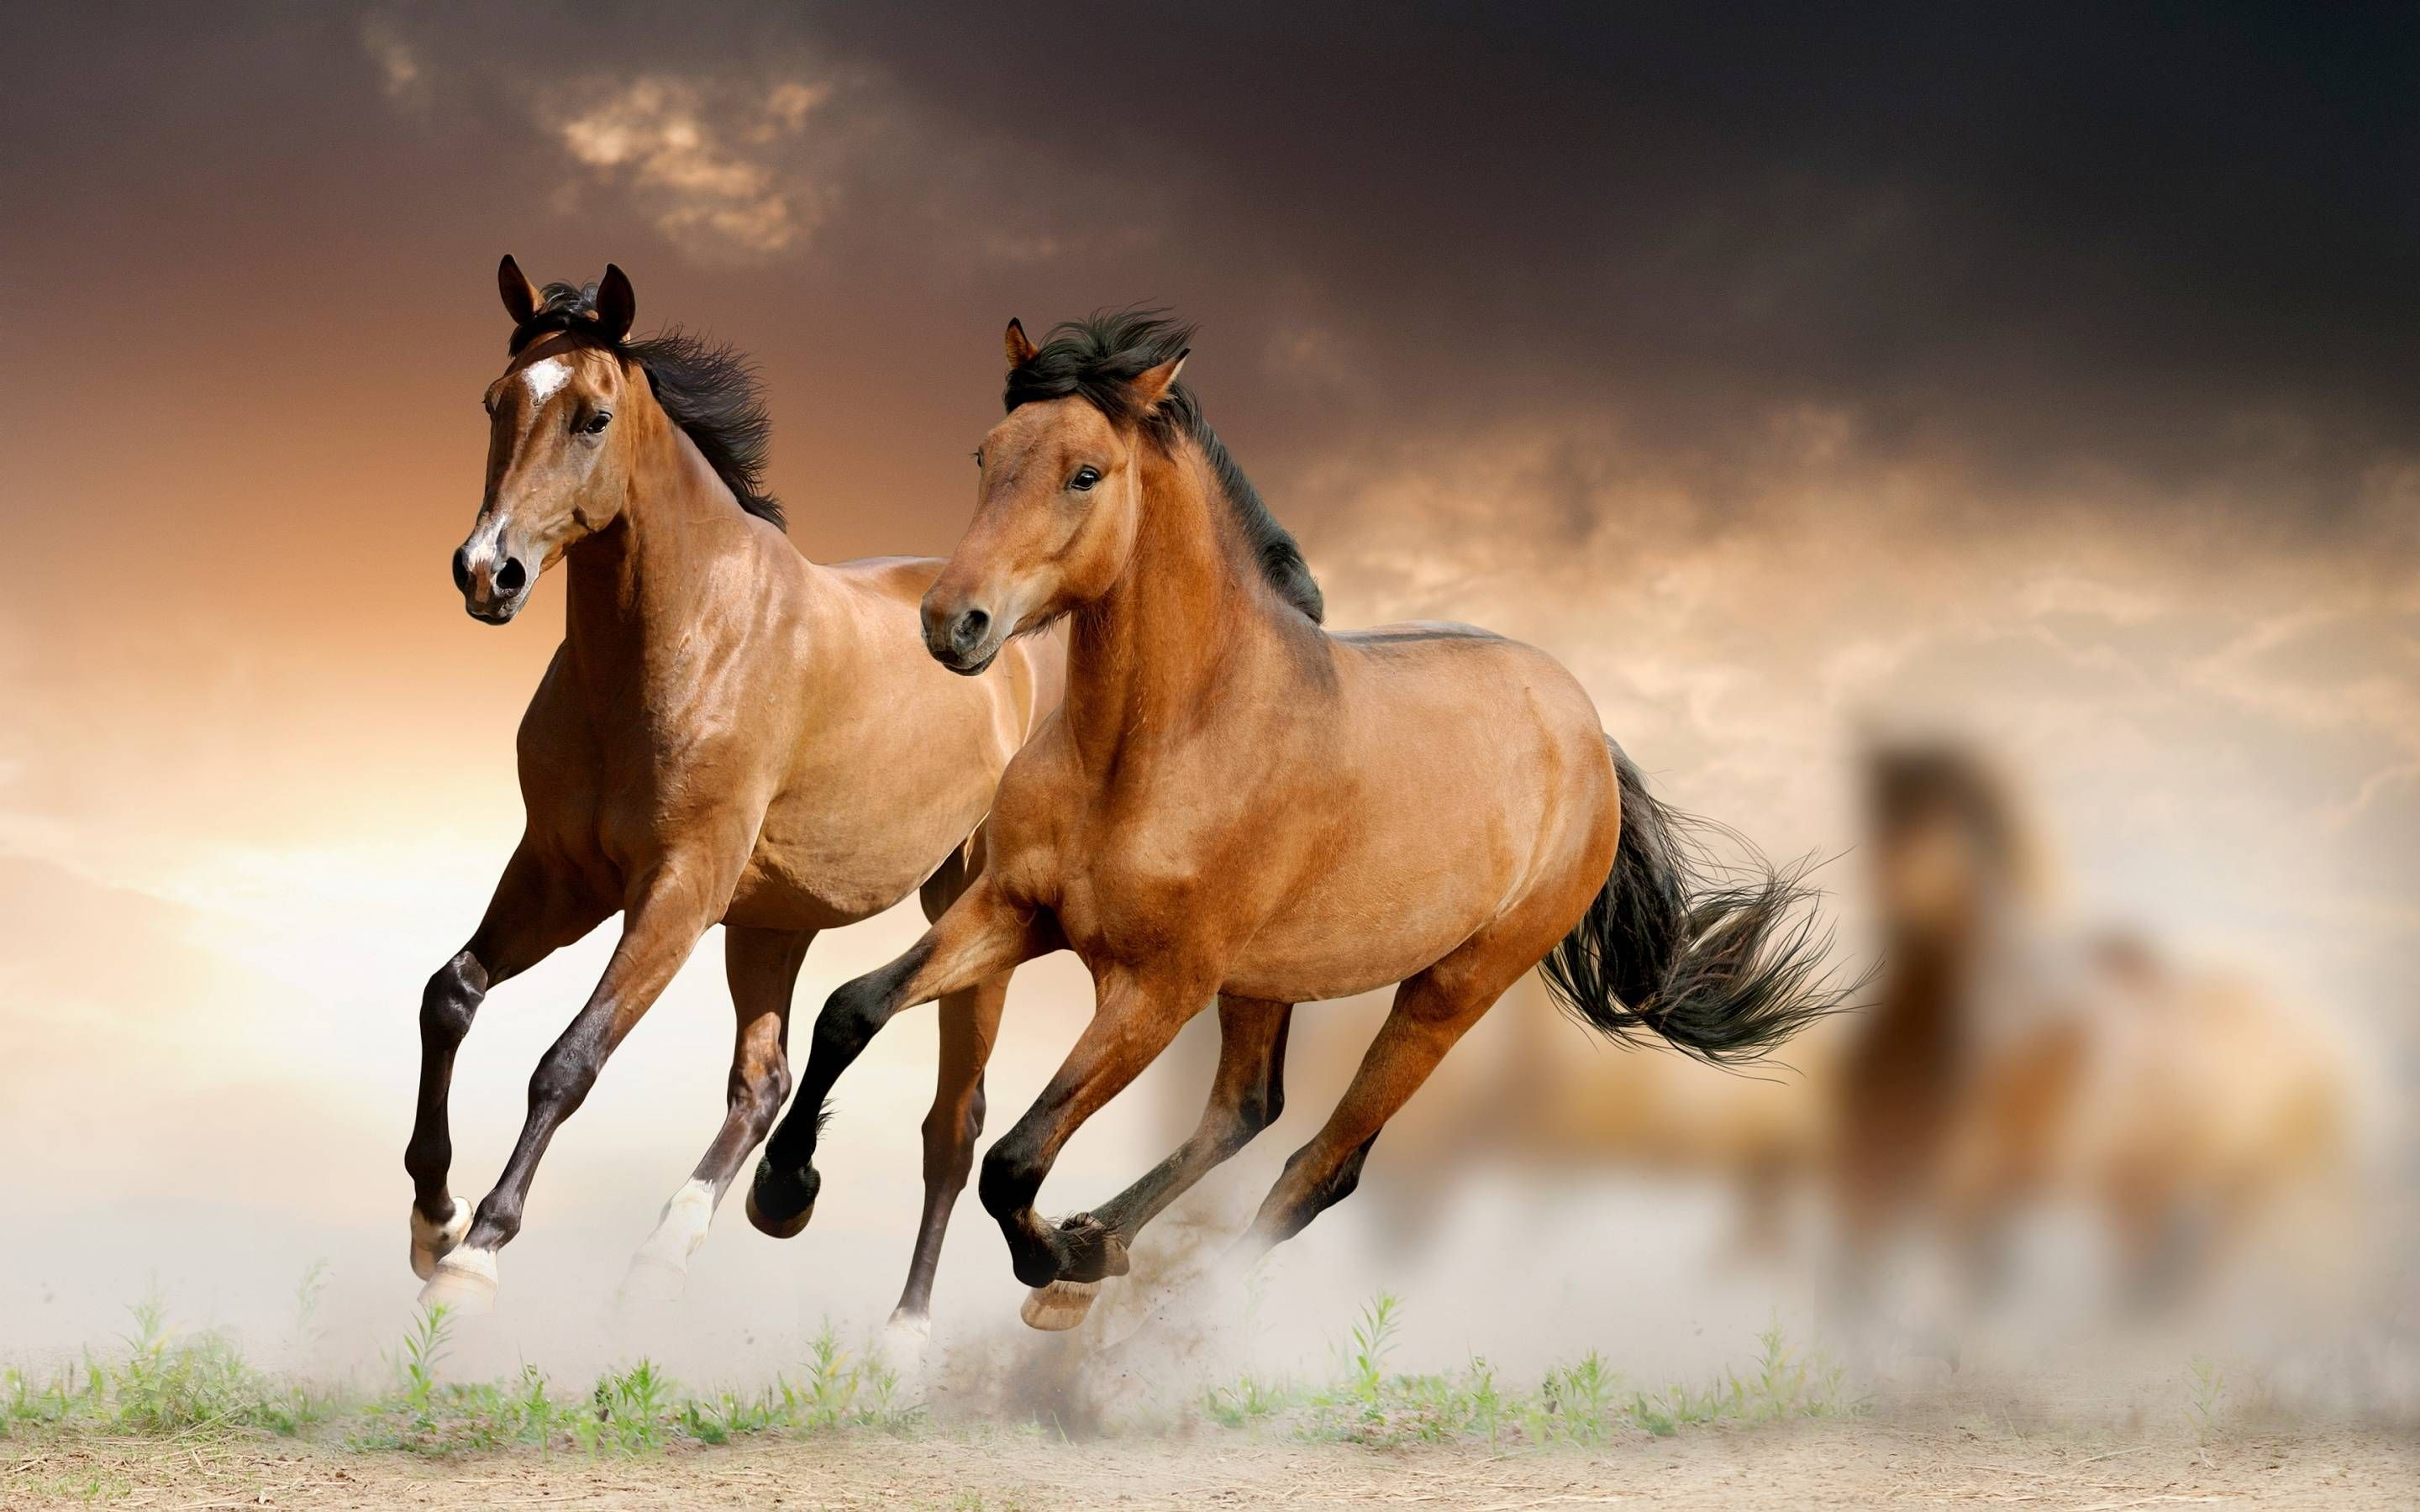 Horse HD Wallpapers Backgrounds Wallpaper HD Wallpapers